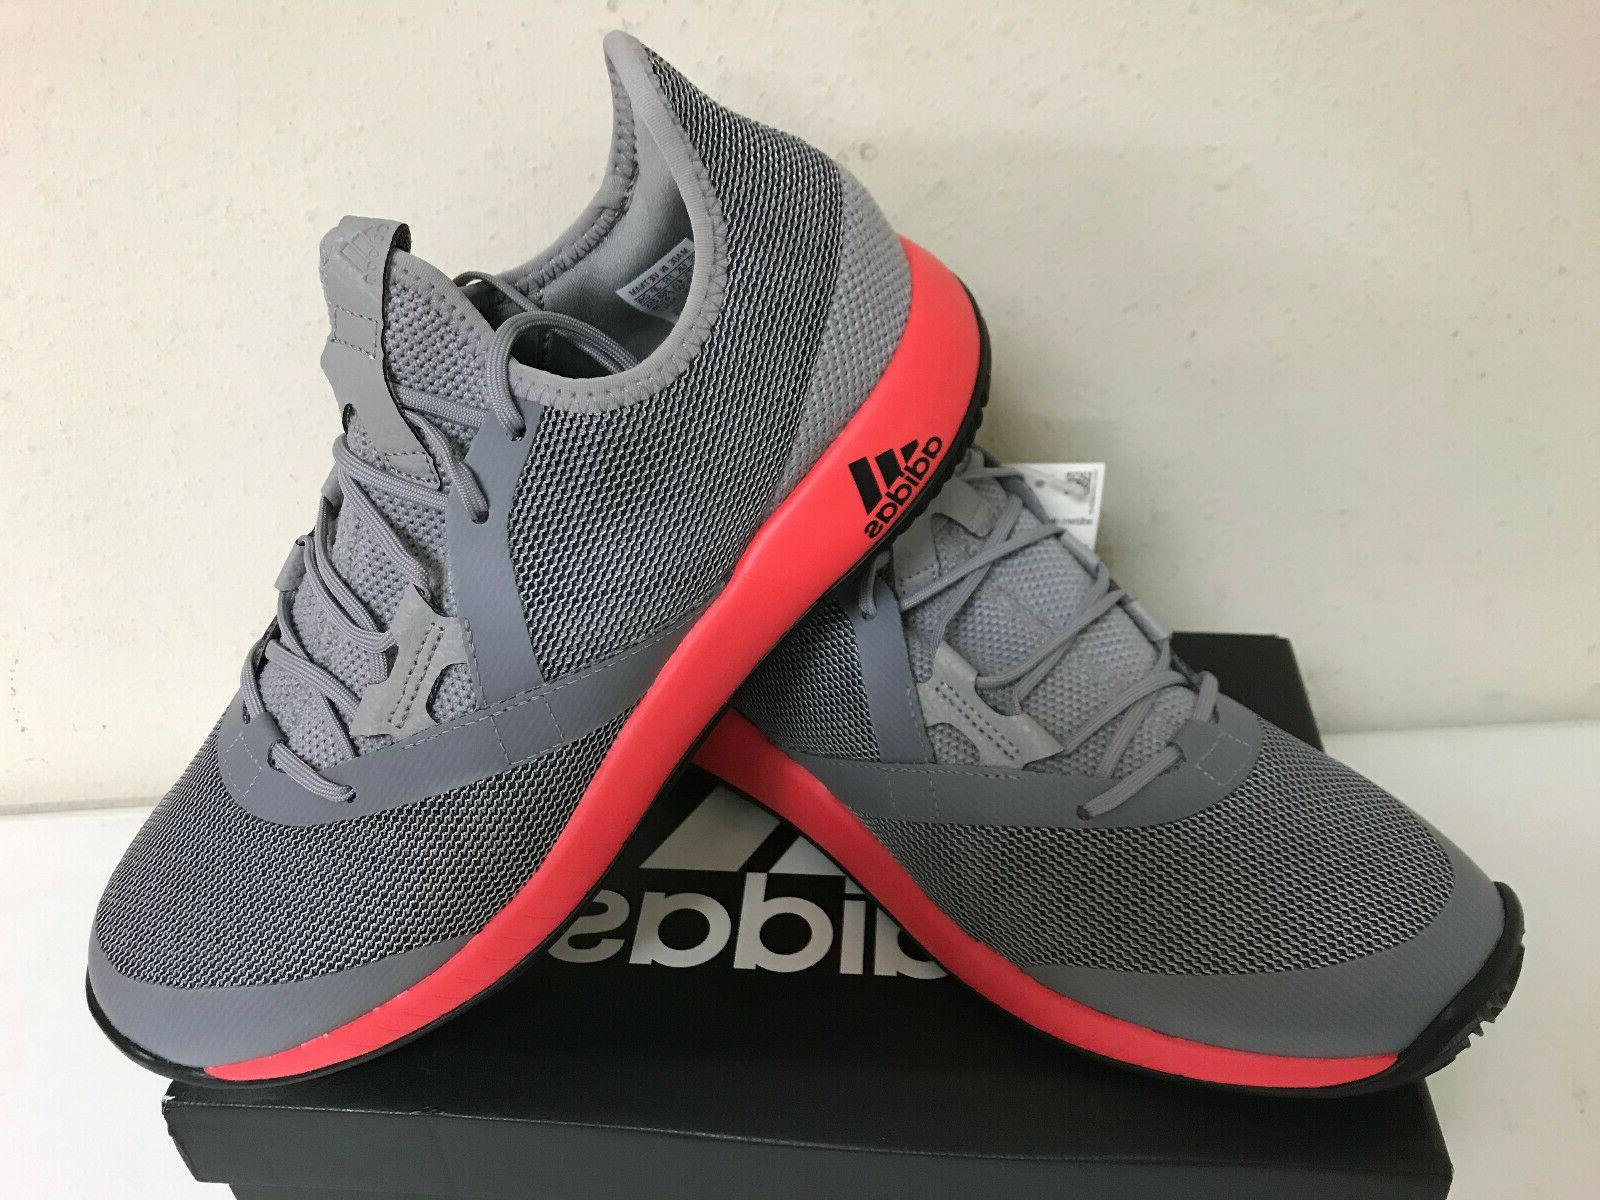 Adidas Bounce Shoe CG6349